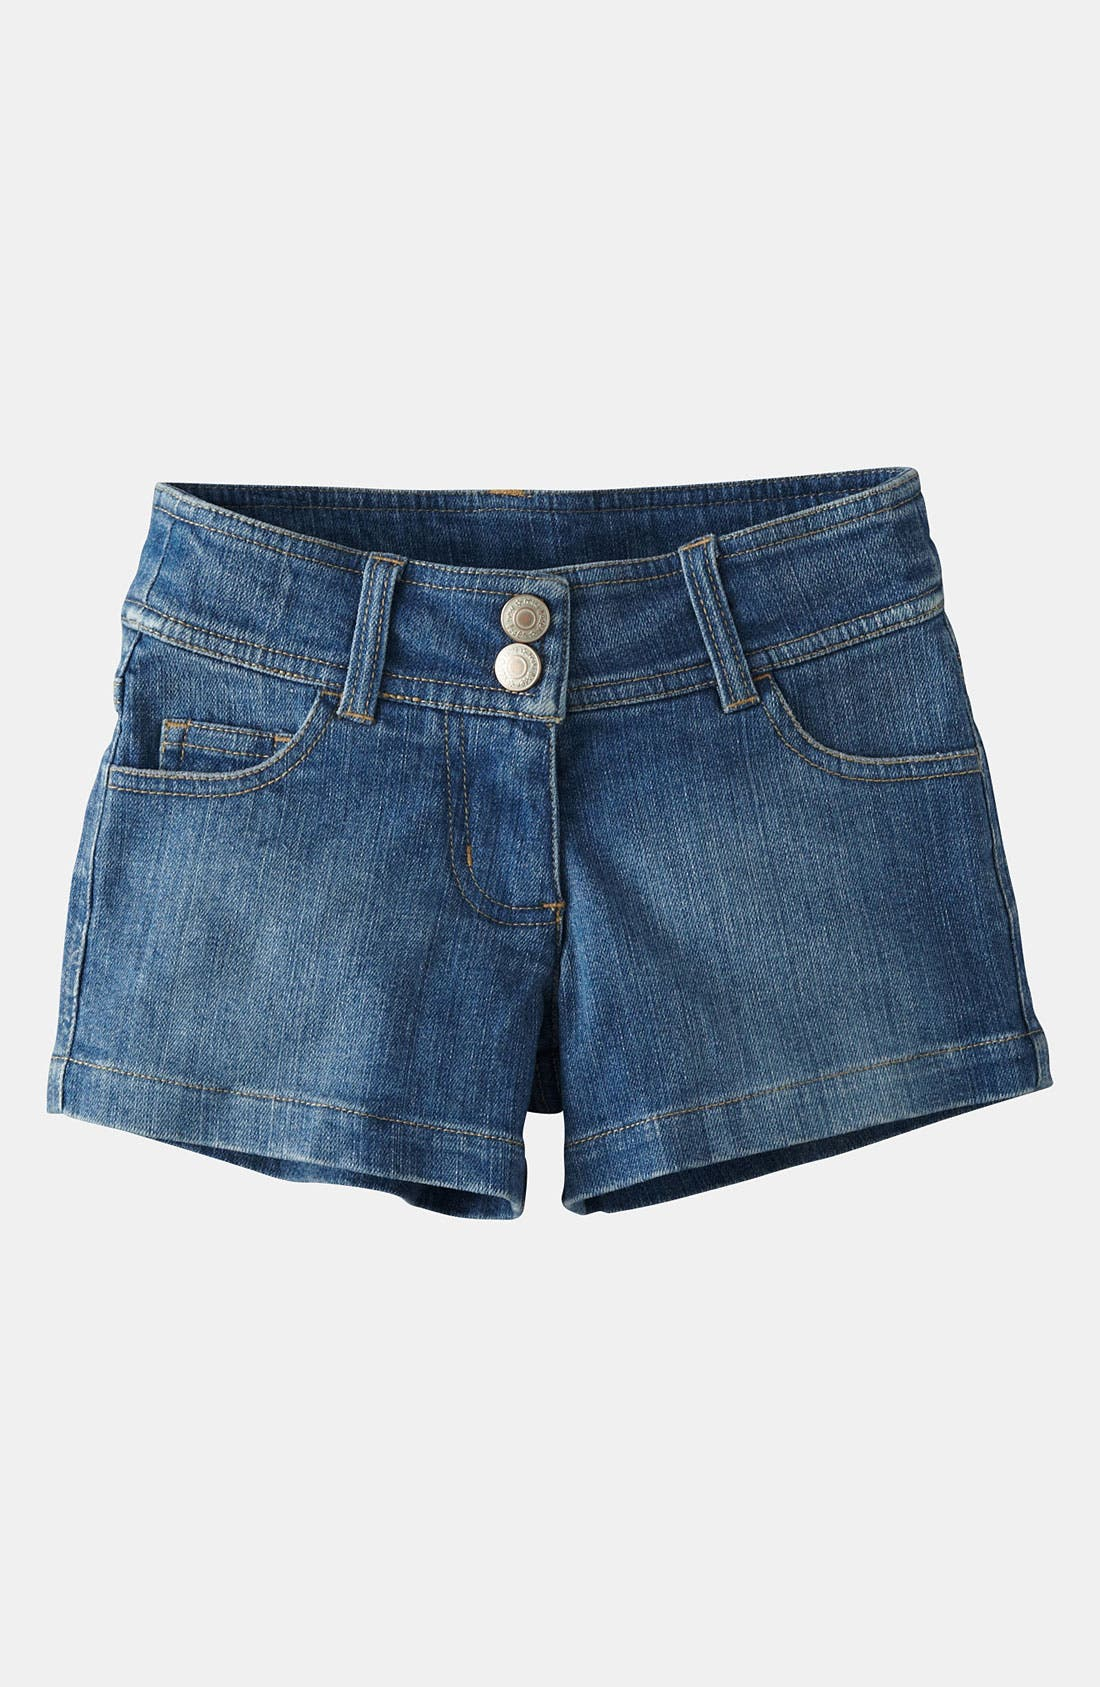 Main Image - Mini Boden 'Heart Pocket' Denim Shorts (Toddler, Little Girls & Big Girls)